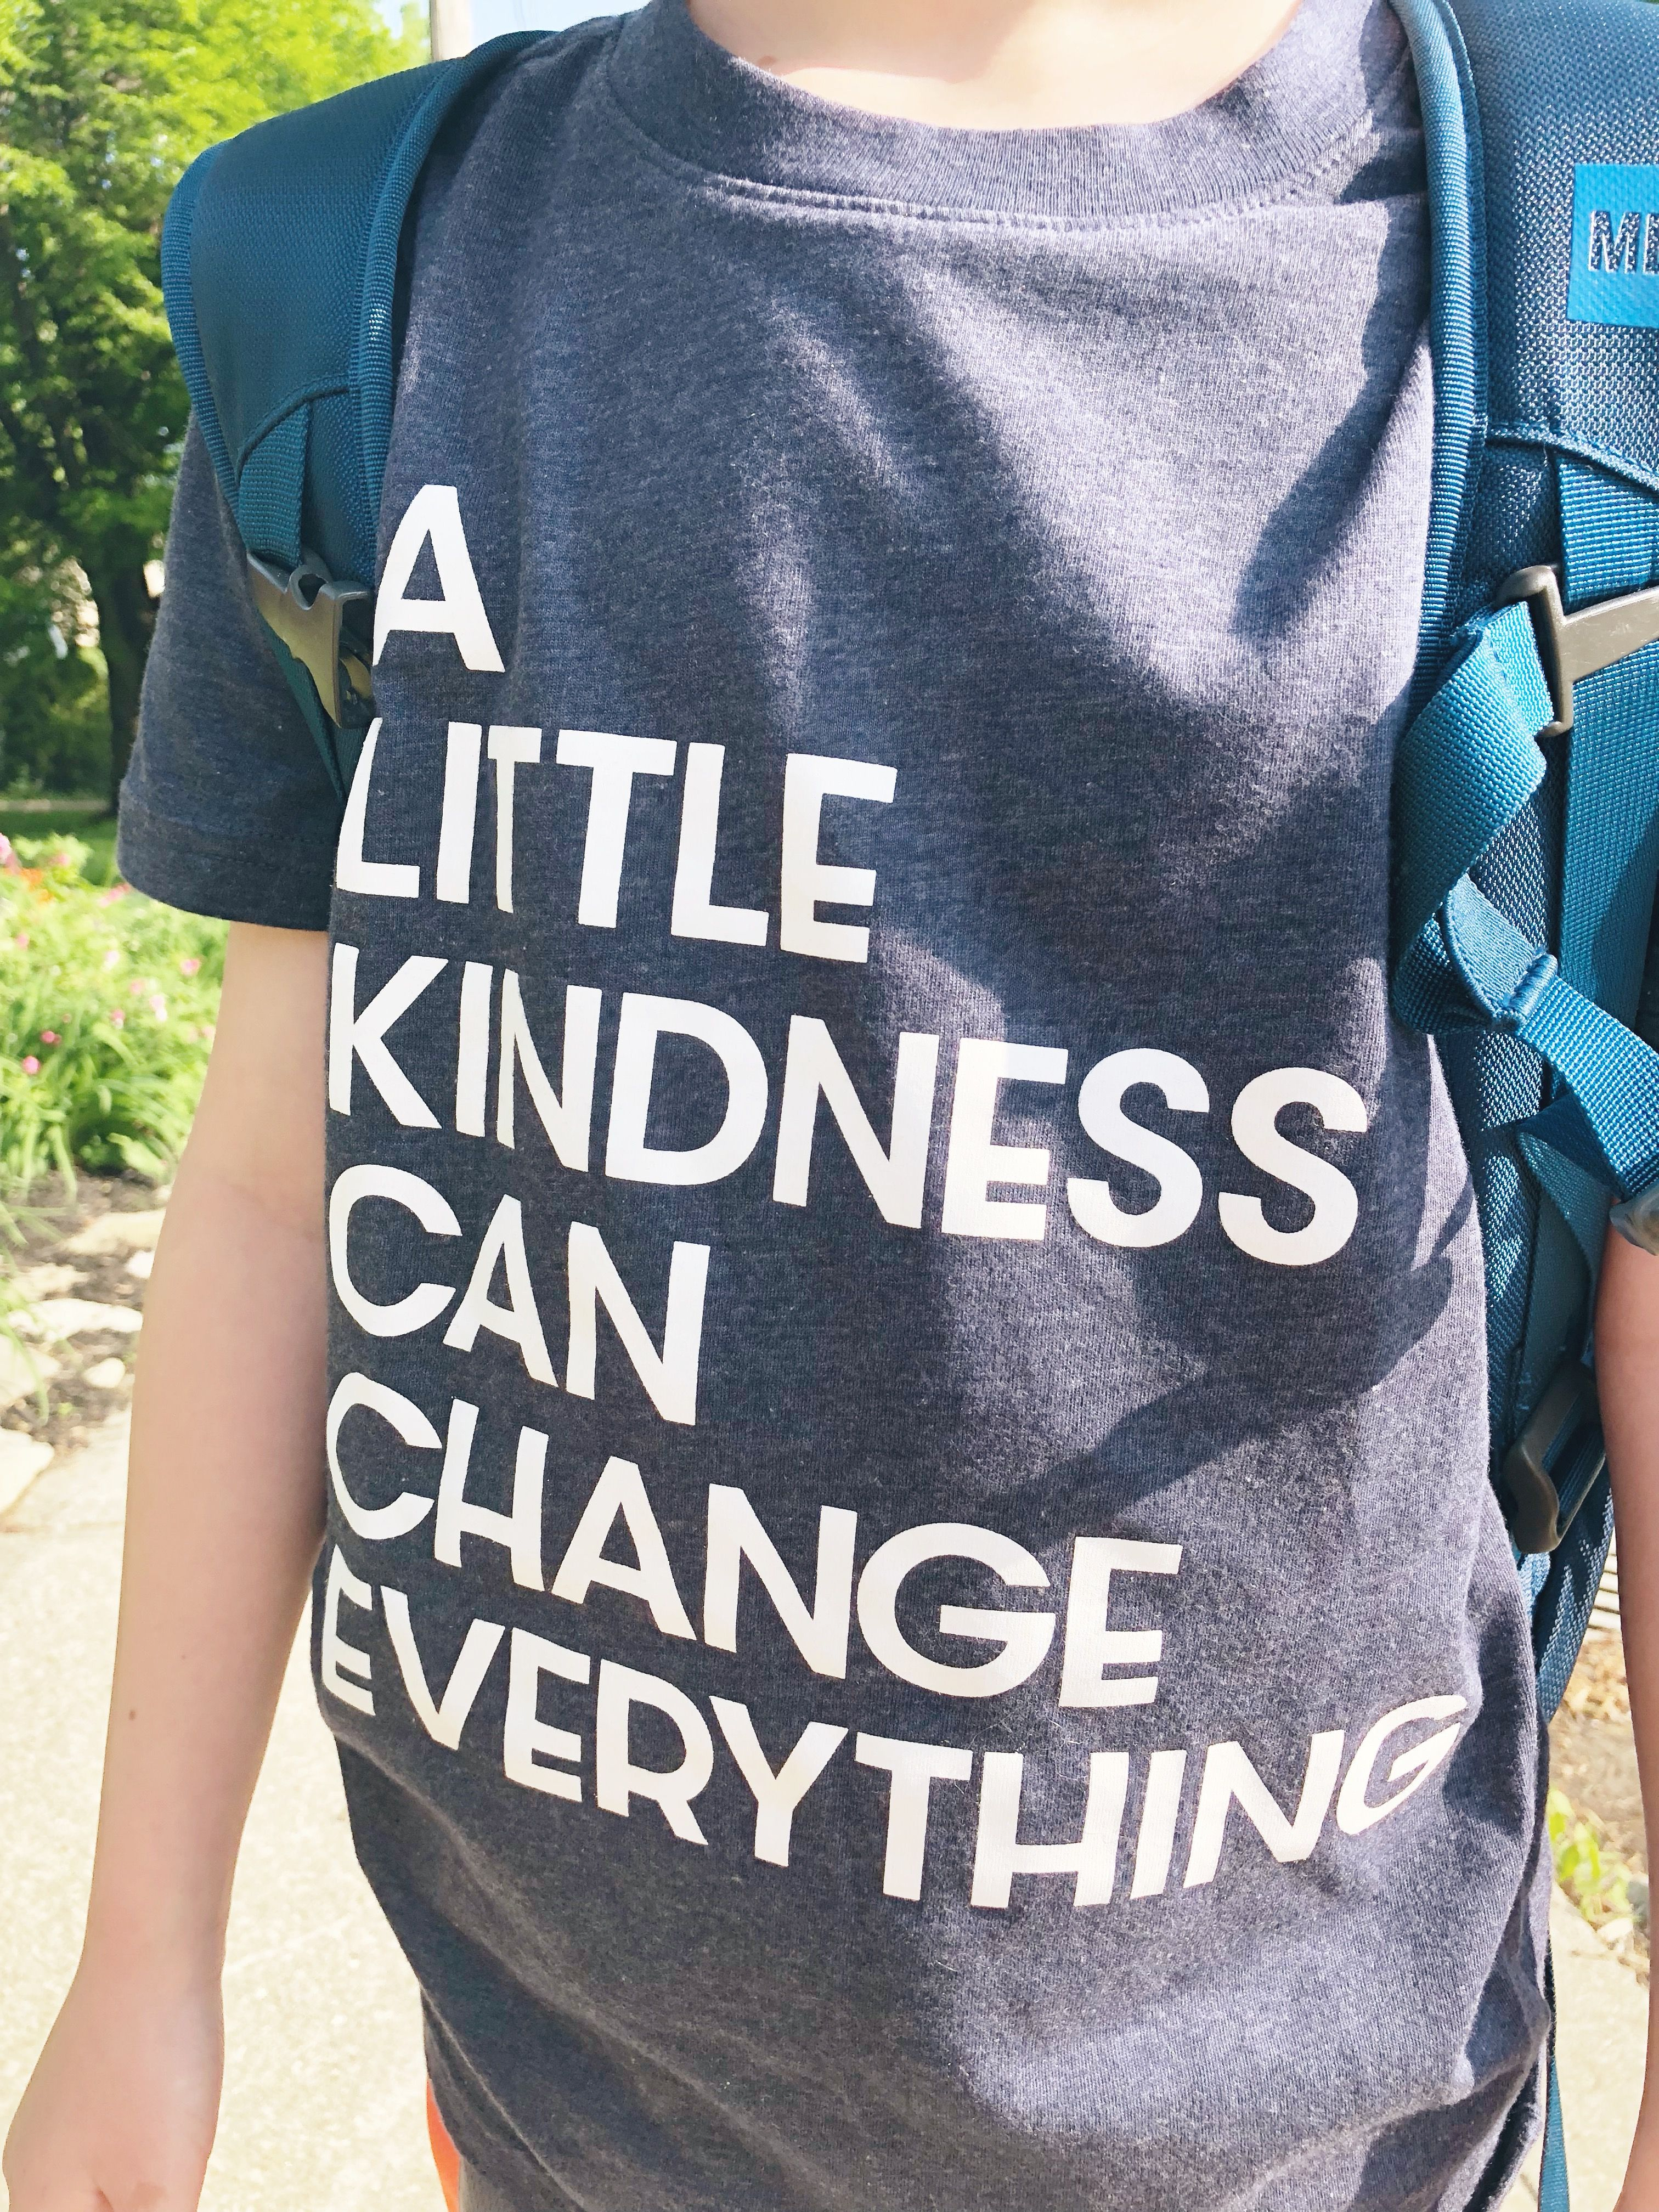 A Little Kindness Can Change Everything Change Your